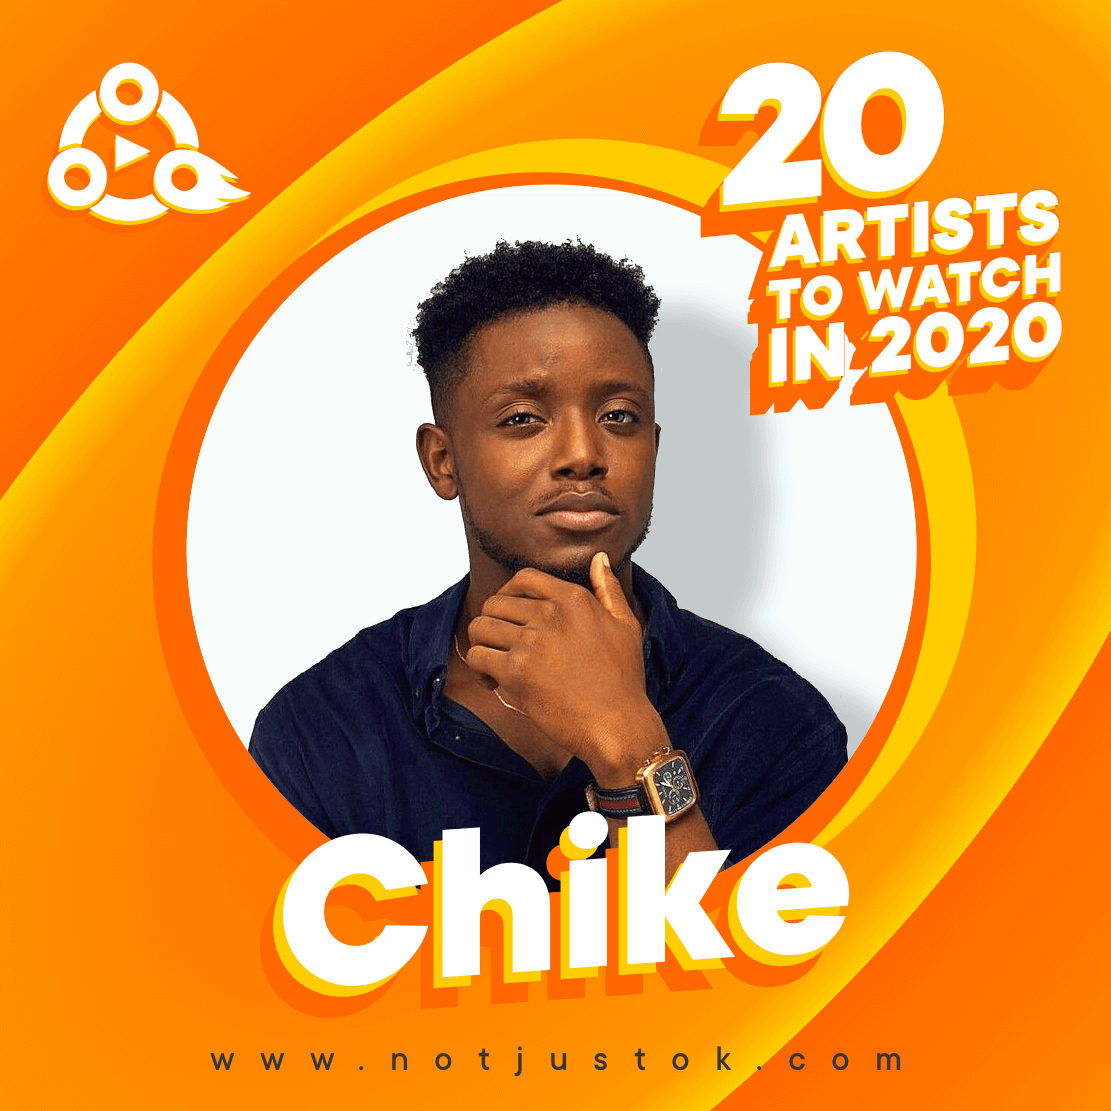 The 20 Artistes To Watch In 2020 - Chike